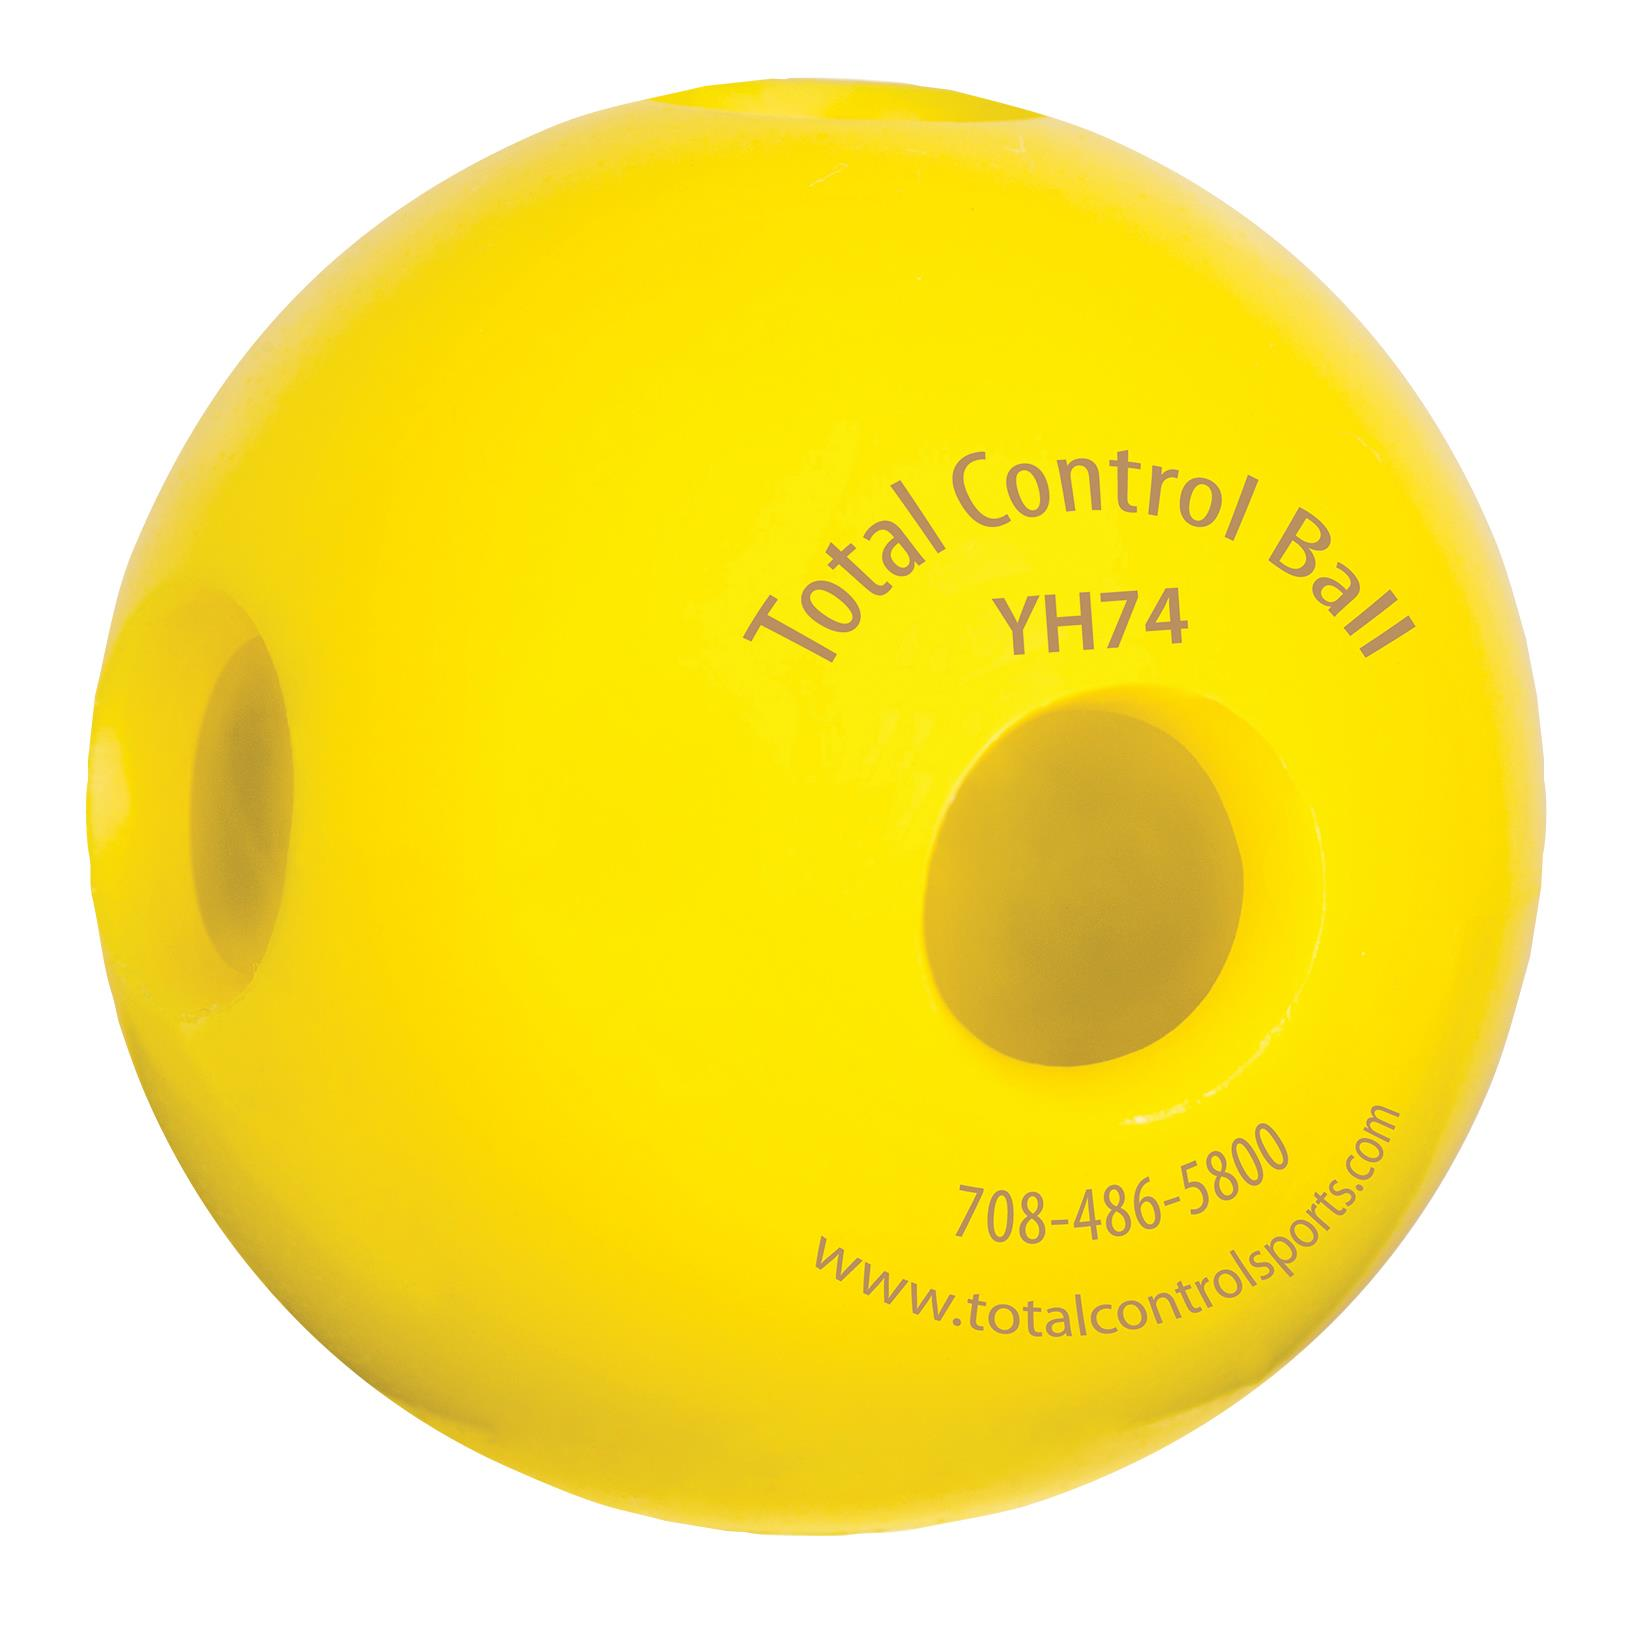 Total Control Hole Ball-Quantity:24 Pack